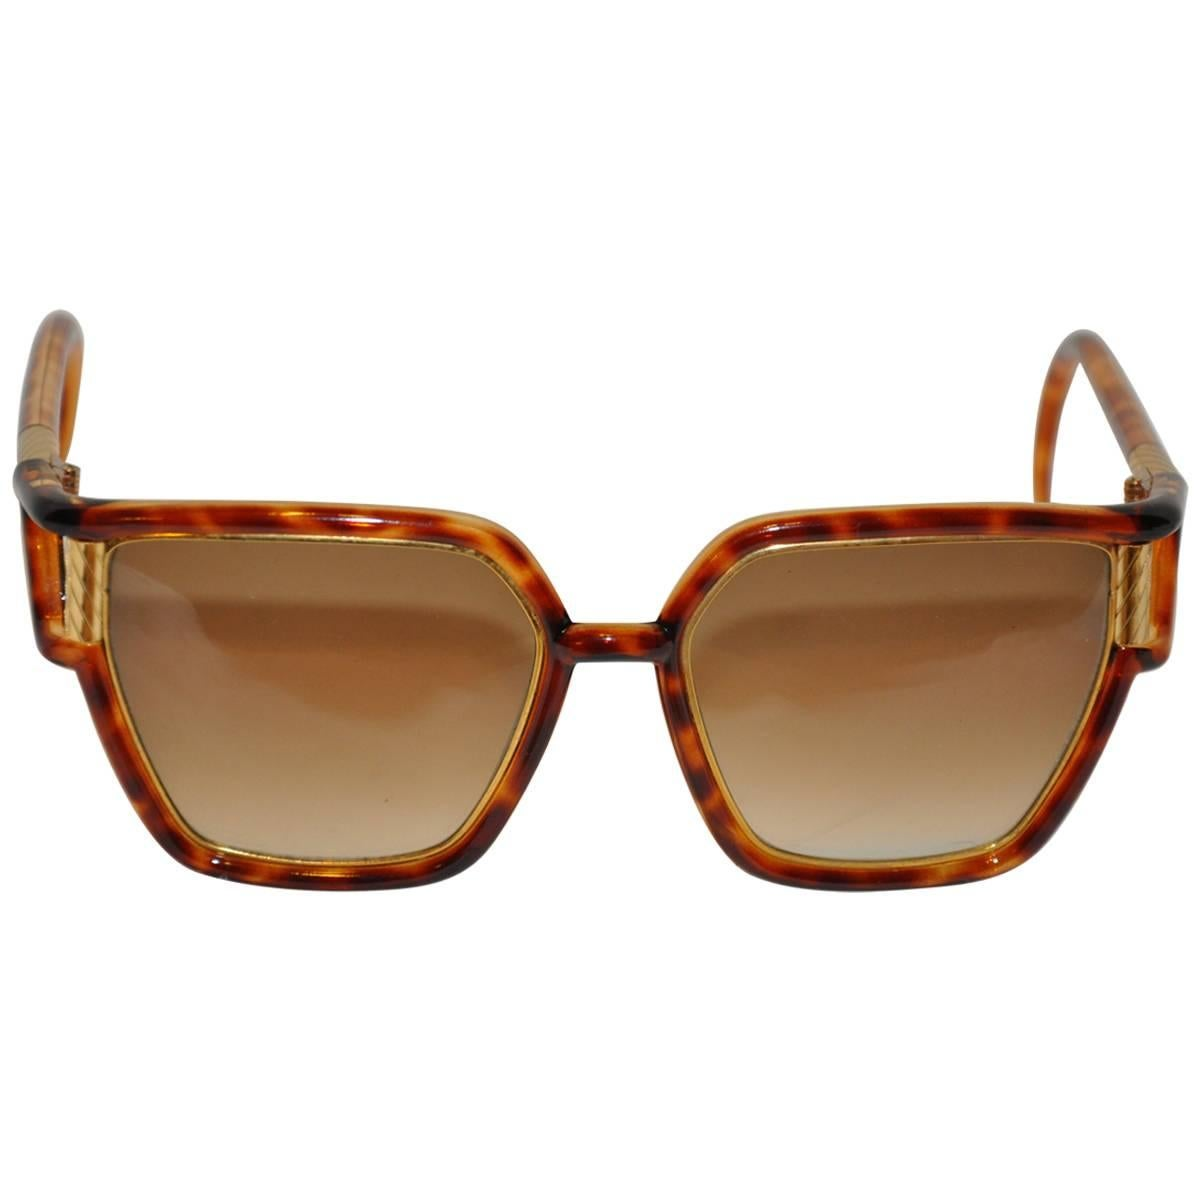 Ted Lapidus Large Tortoise Shell Accented with Gilded Gold Hardware Sunglass